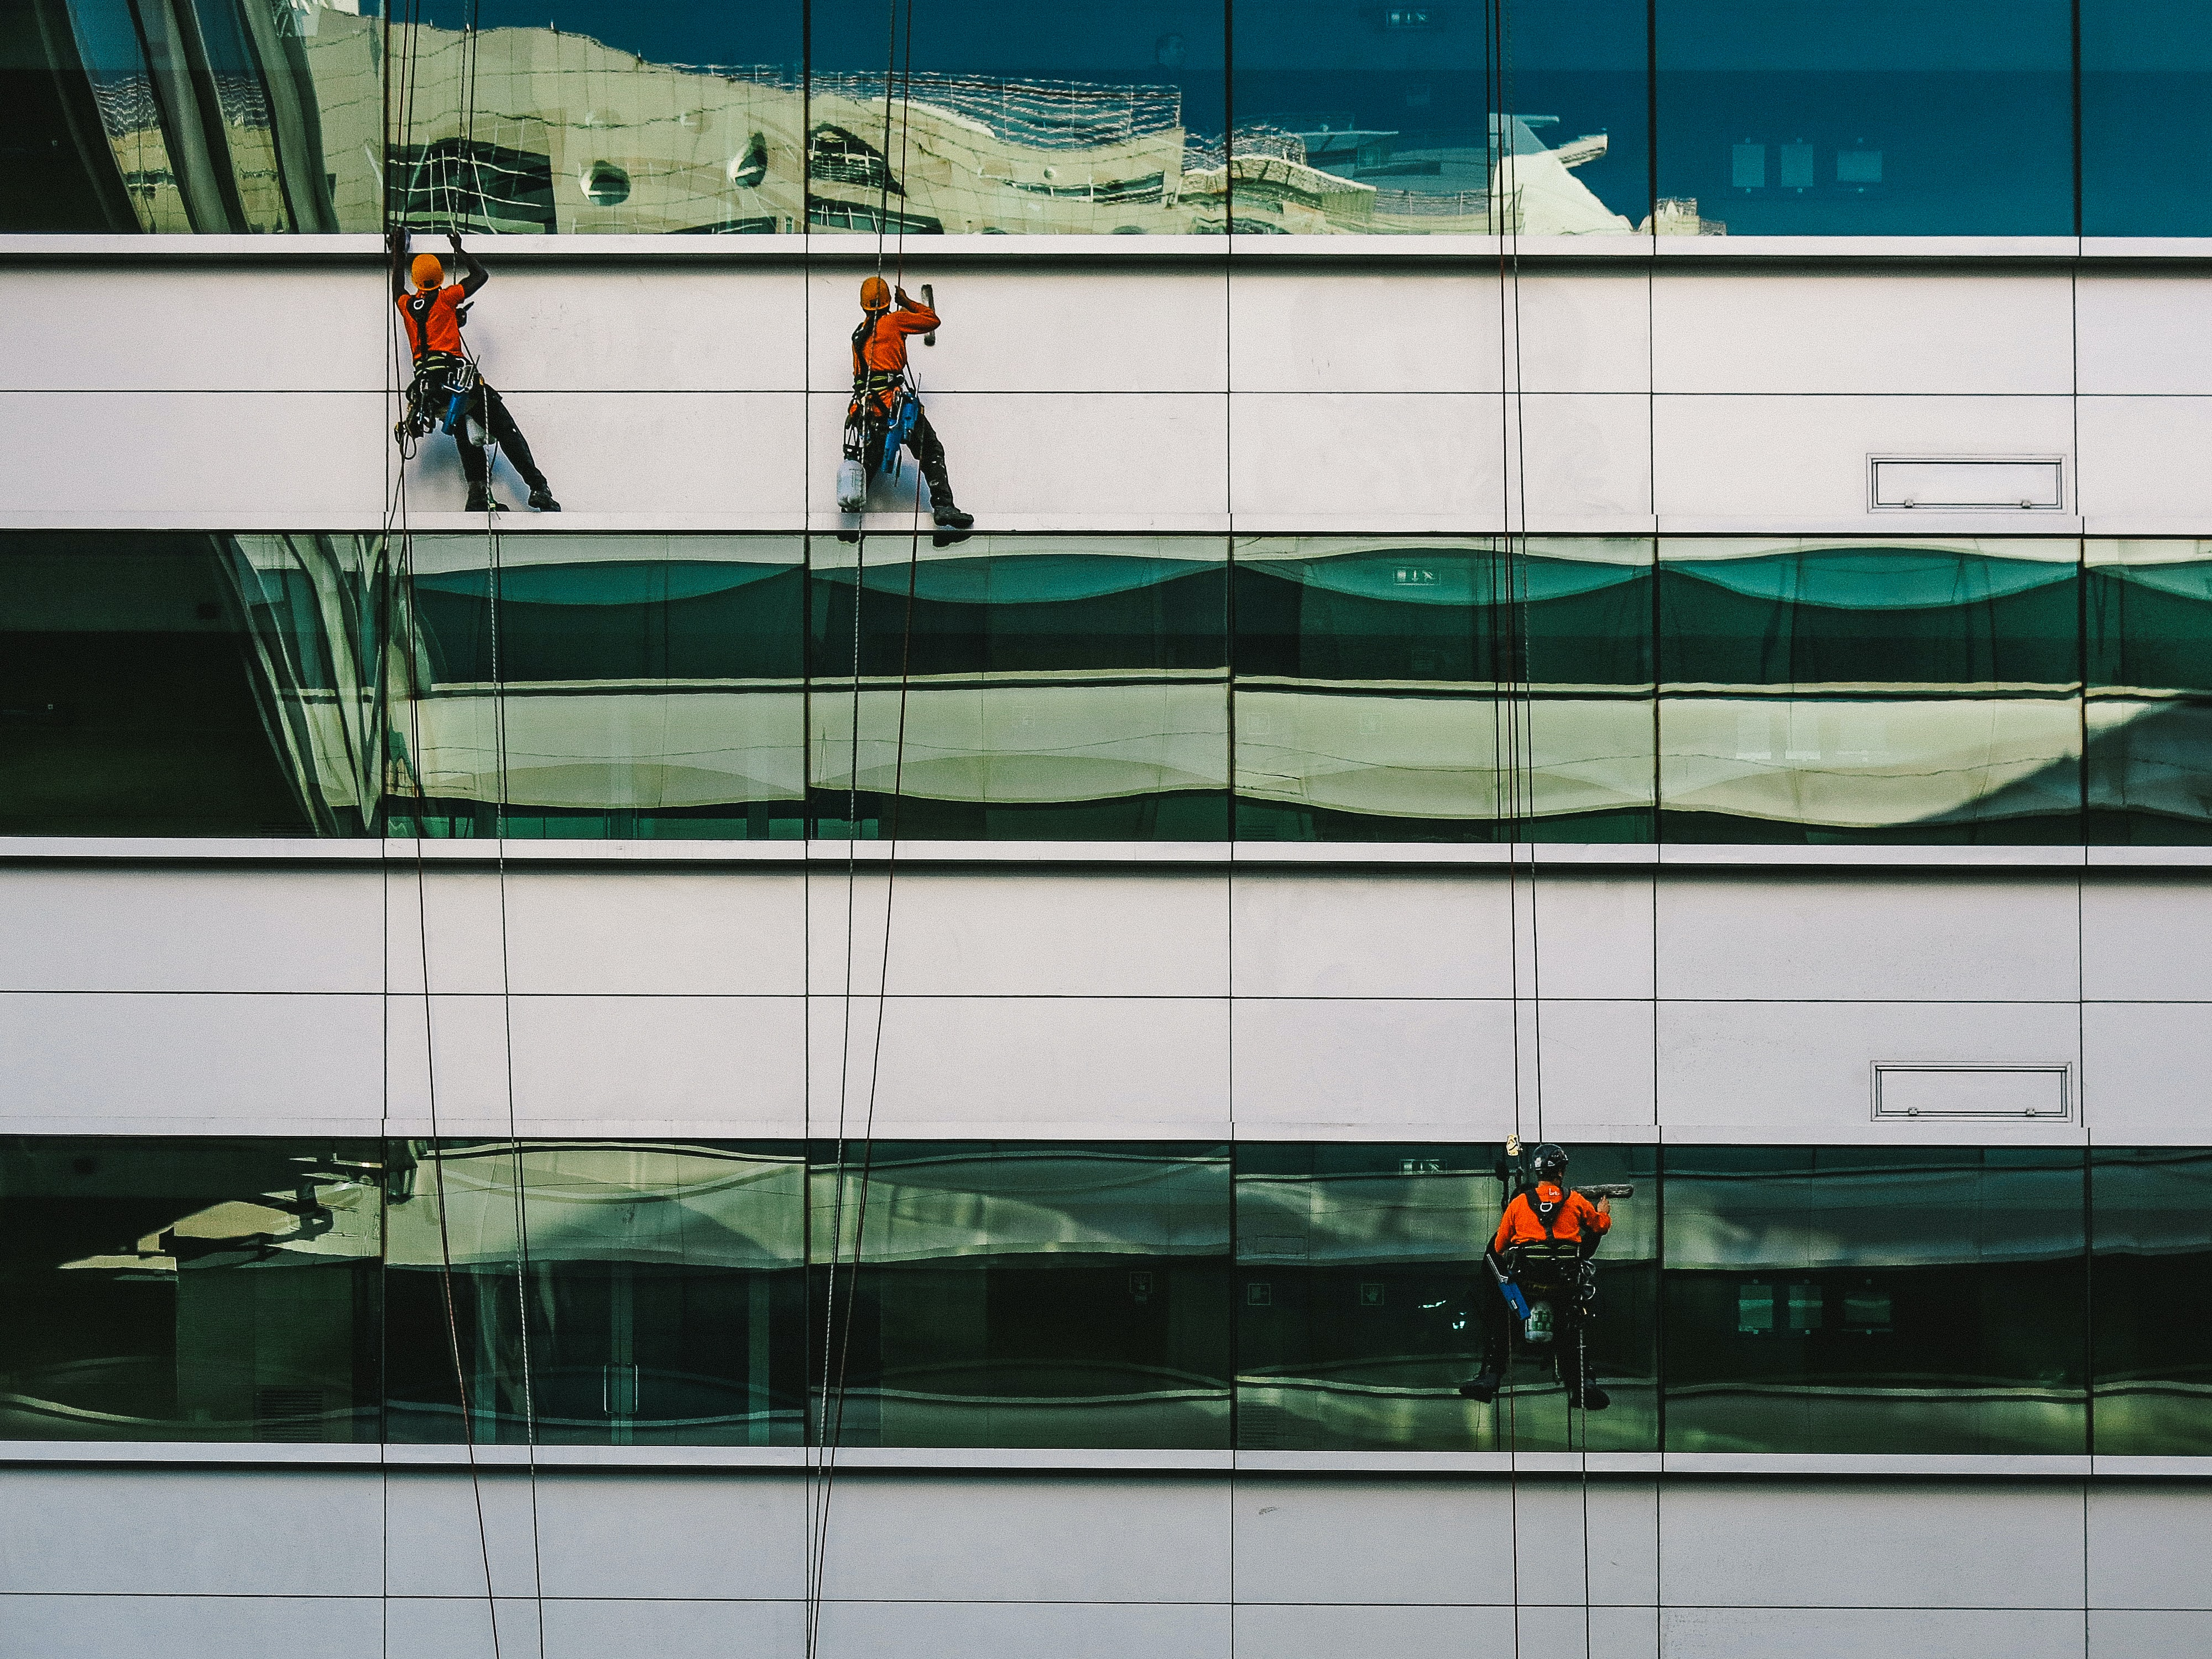 Three window cleaners on ropes on an office building facade